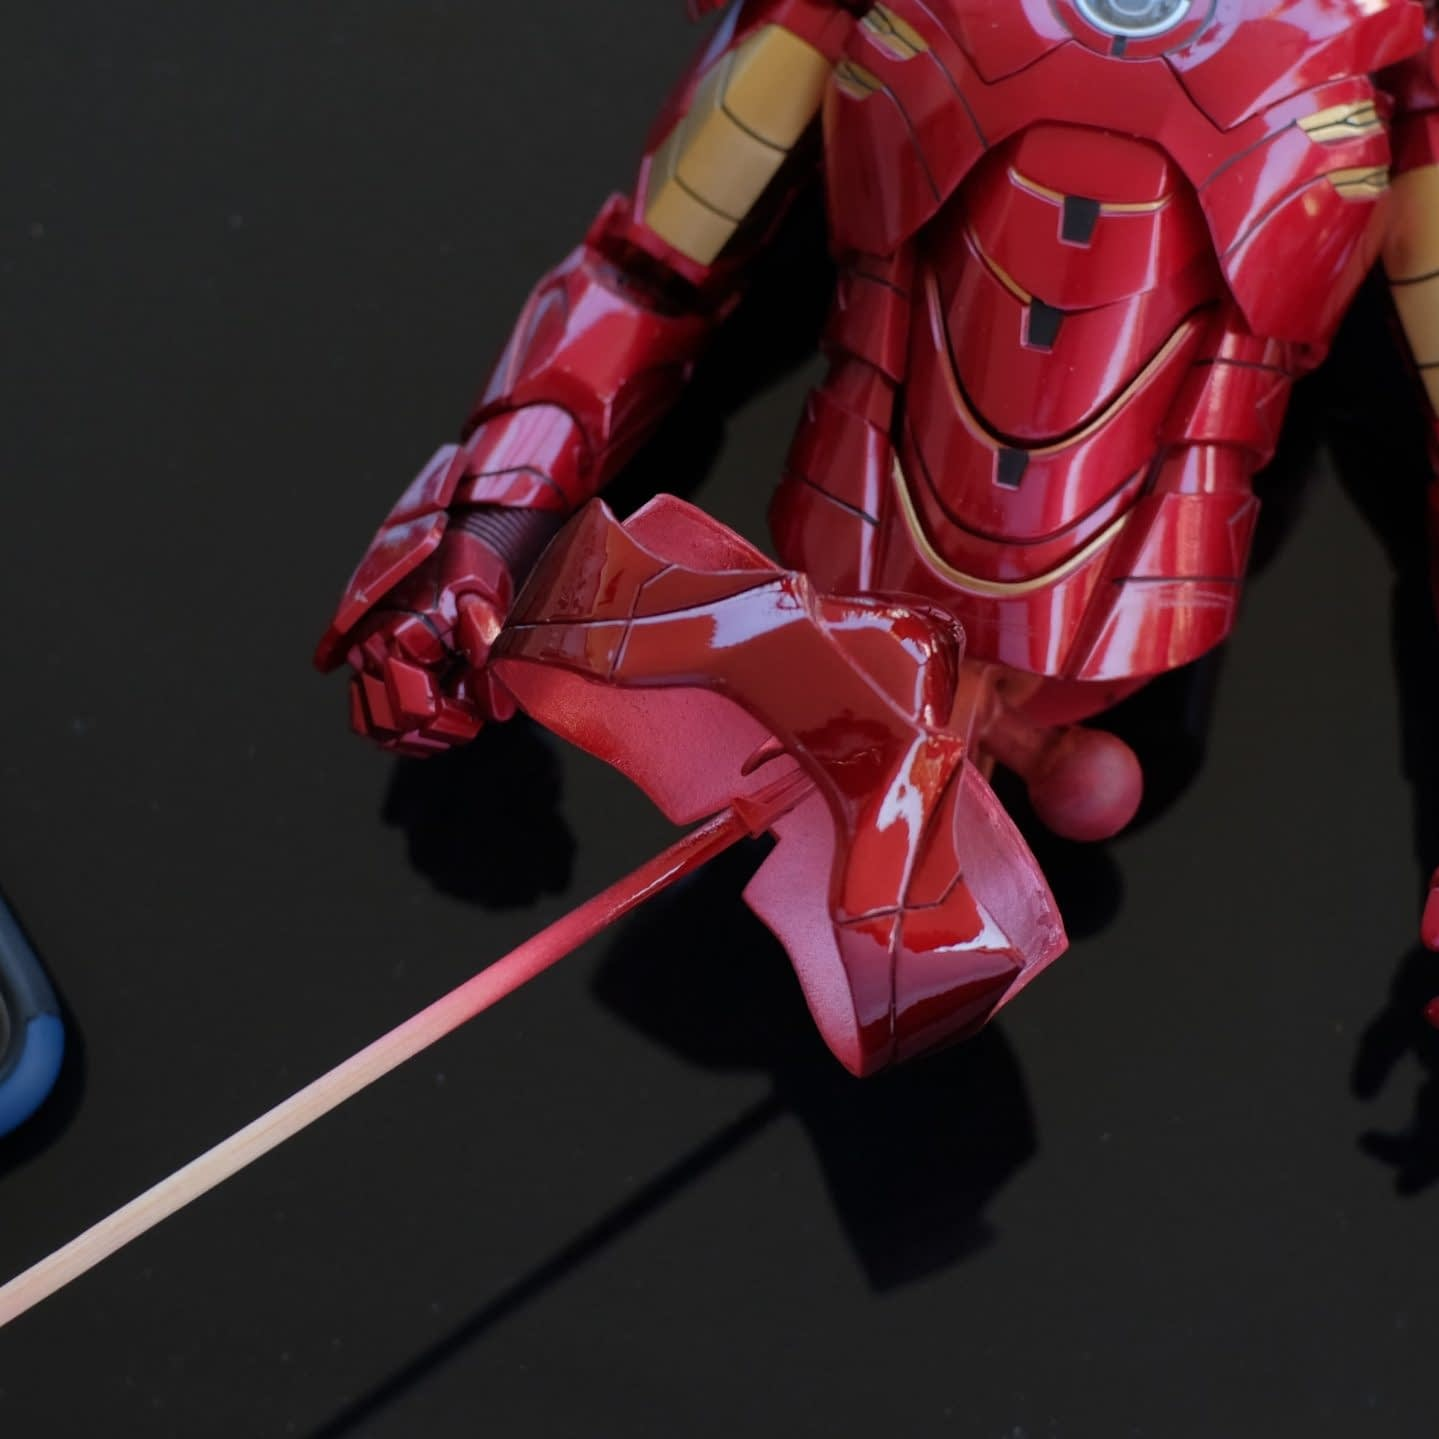 How to fix HT's Iron Man pink panty issue 21